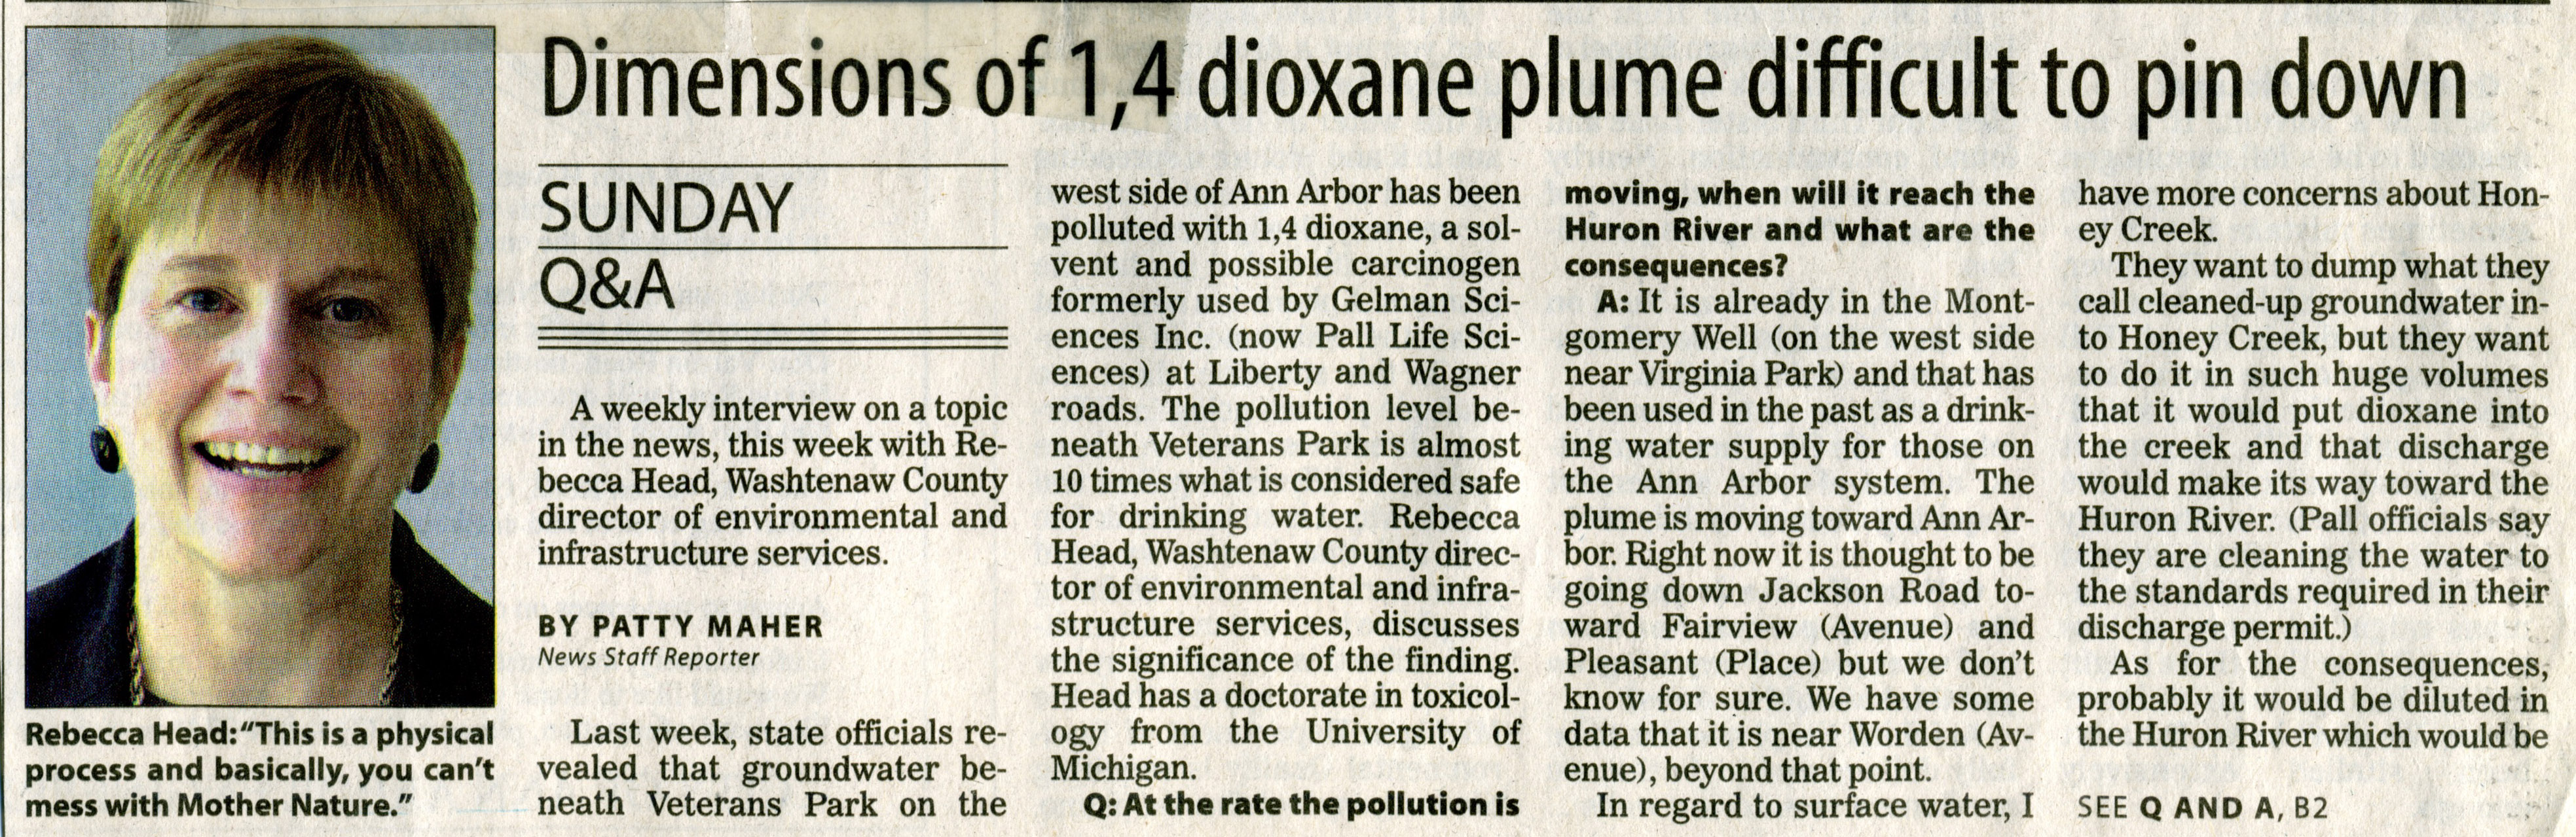 Dimensions of 1,4 dioxane plume difficult to pin down image